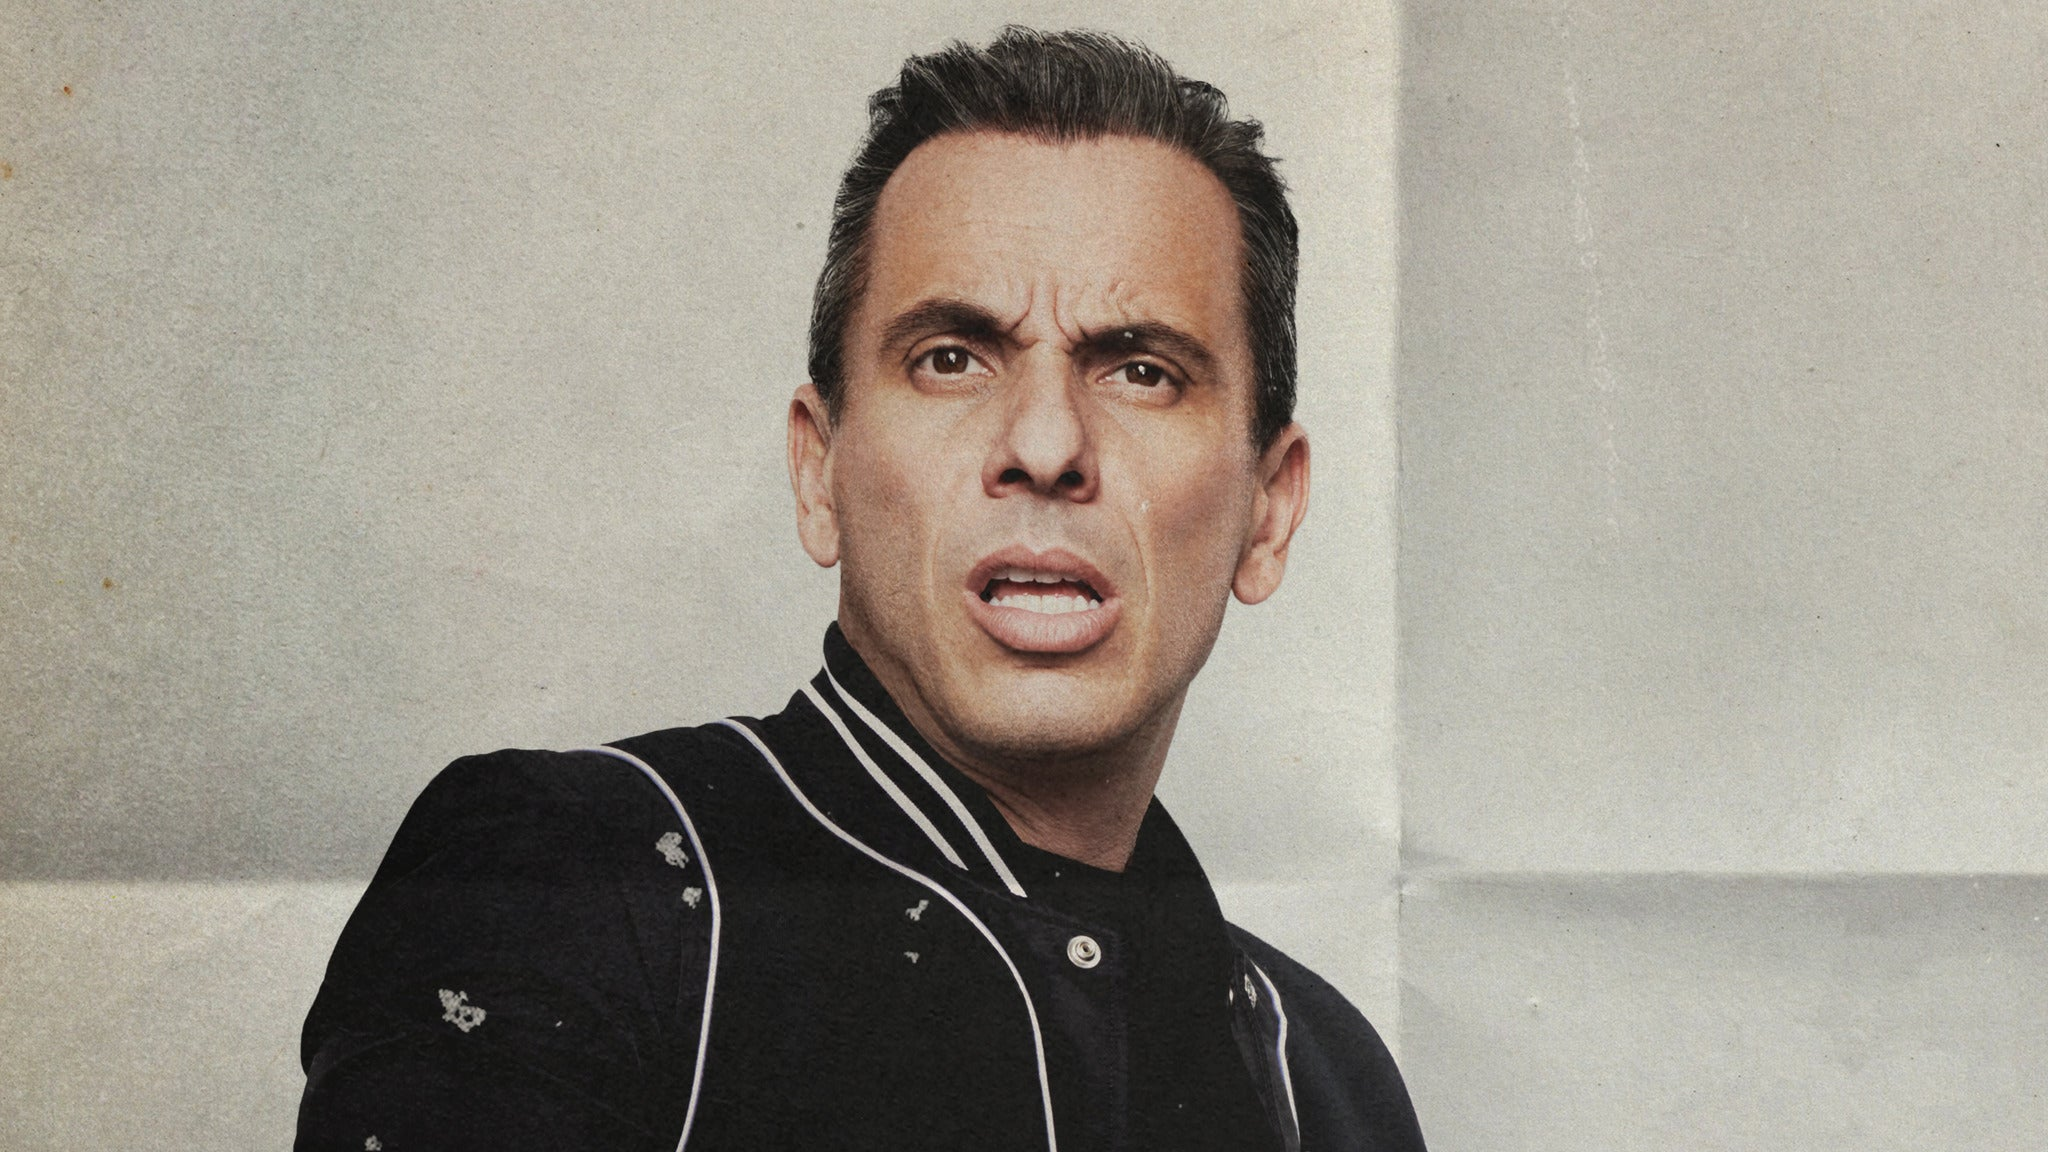 Sebastian Maniscalco: You Bother Me